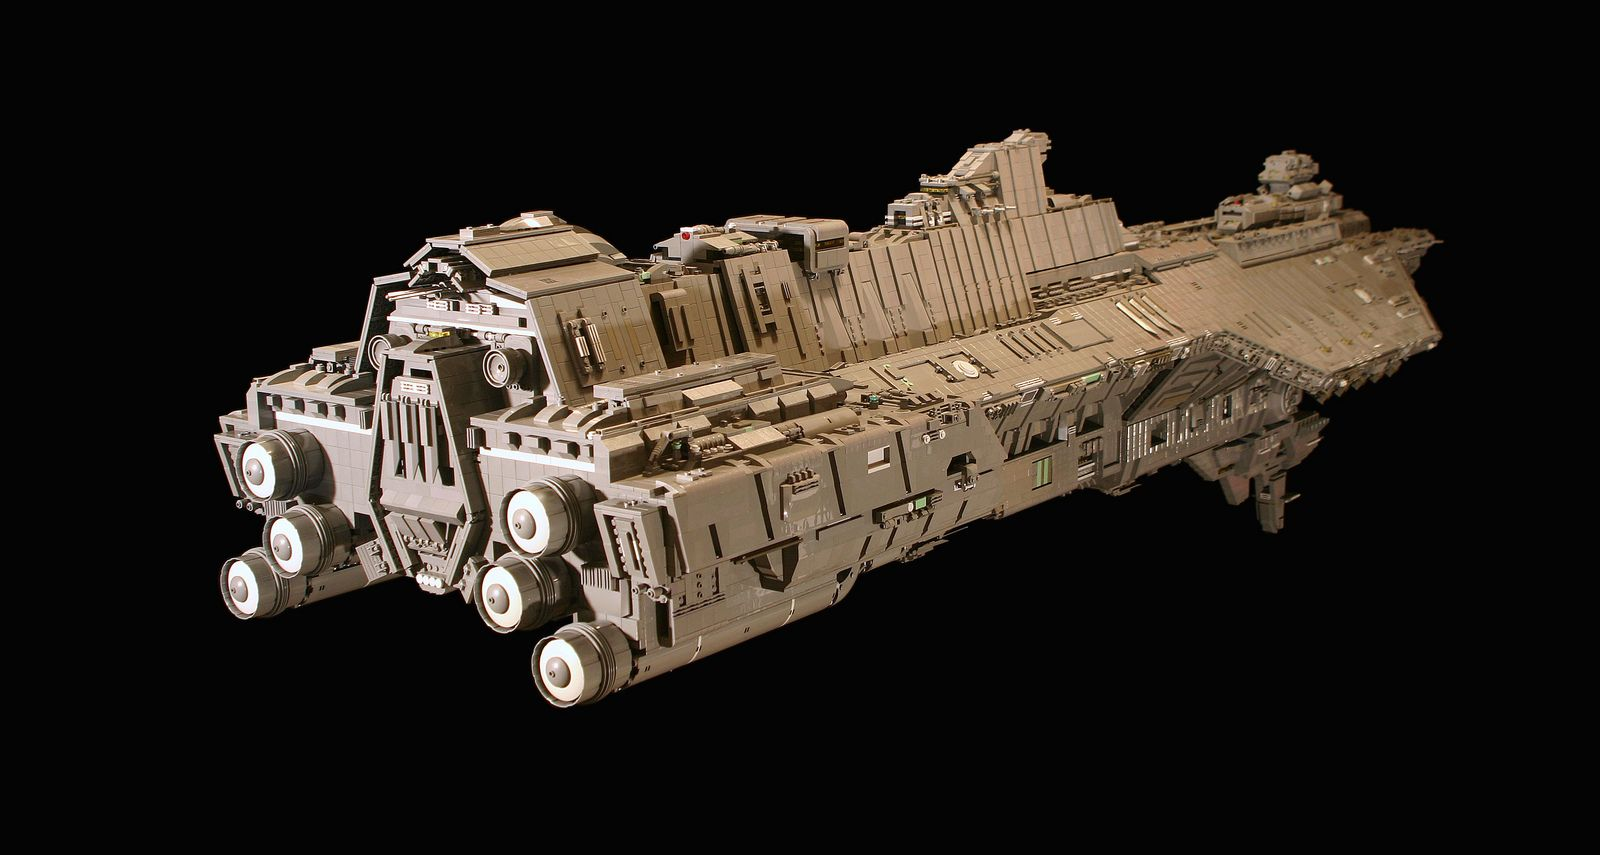 UNSC Spirit of Fire | Lego | Lego halo, Lego spaceship, Lego